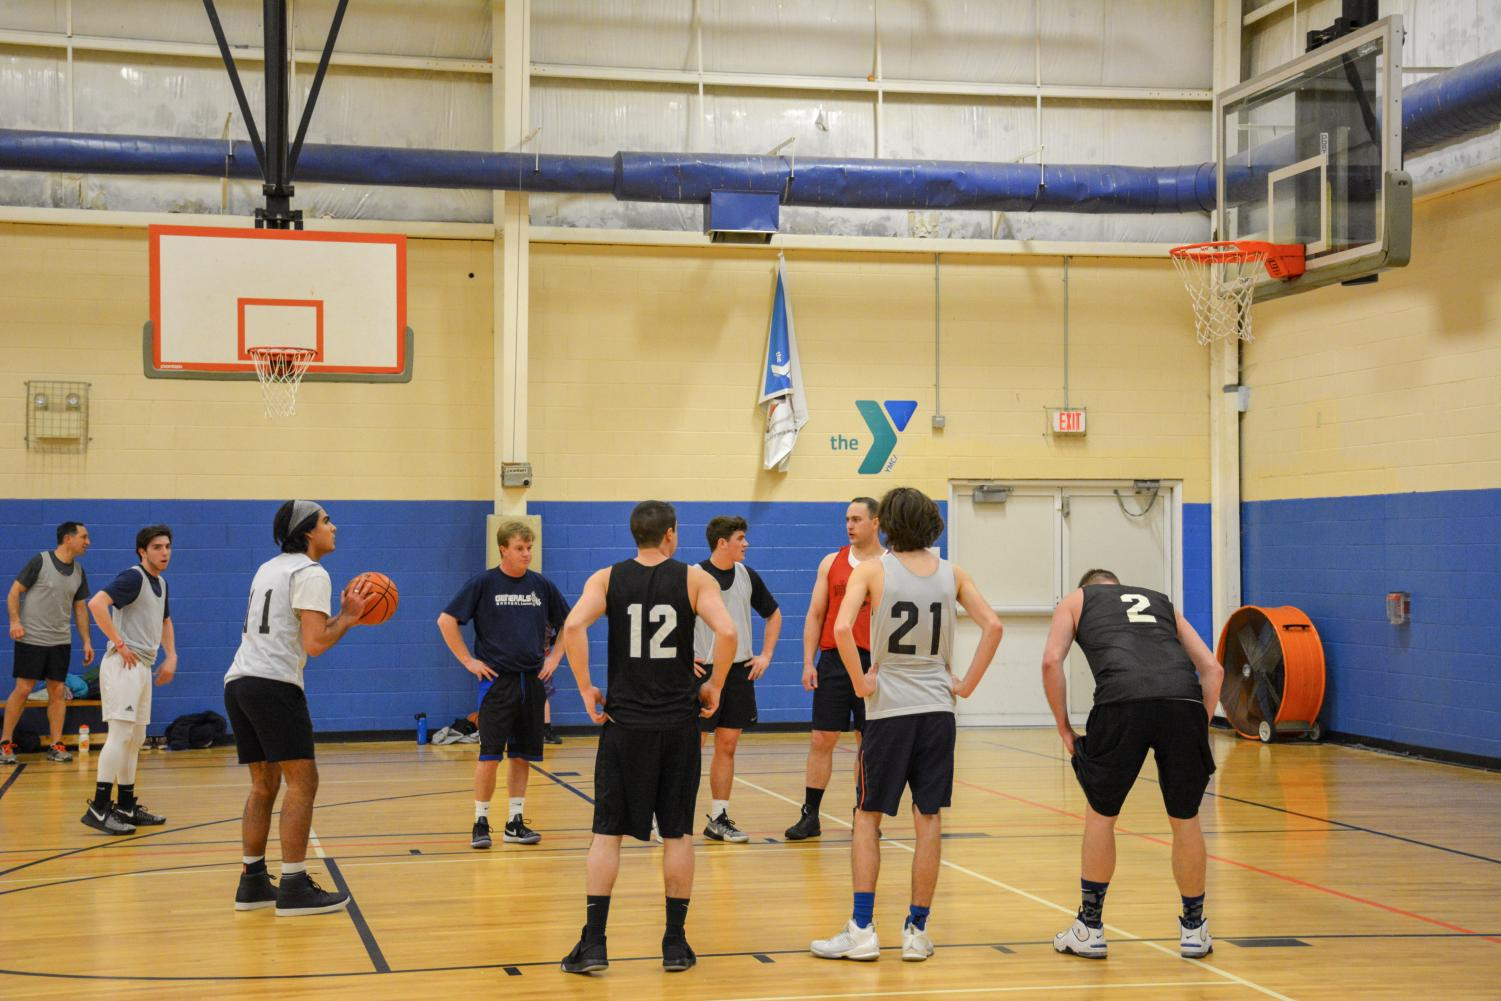 Dimitri Lara ('19) at the line with teammates looking on. The Fleet could really use these points.